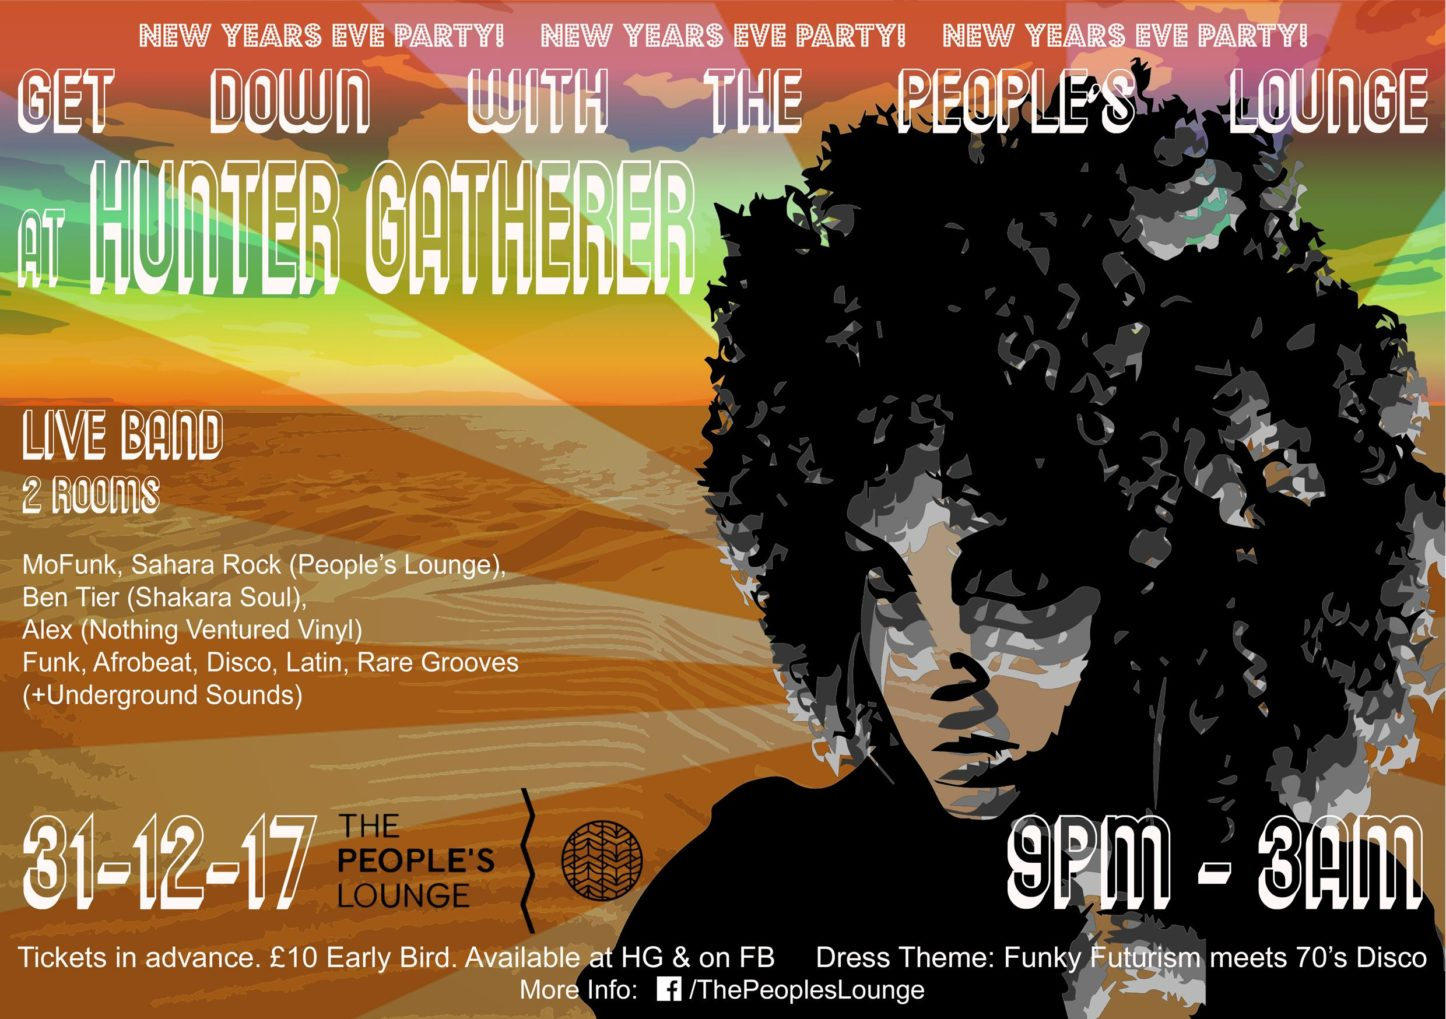 New Years Eve Party - Get Down with The People's Lounge   Blacknet UK